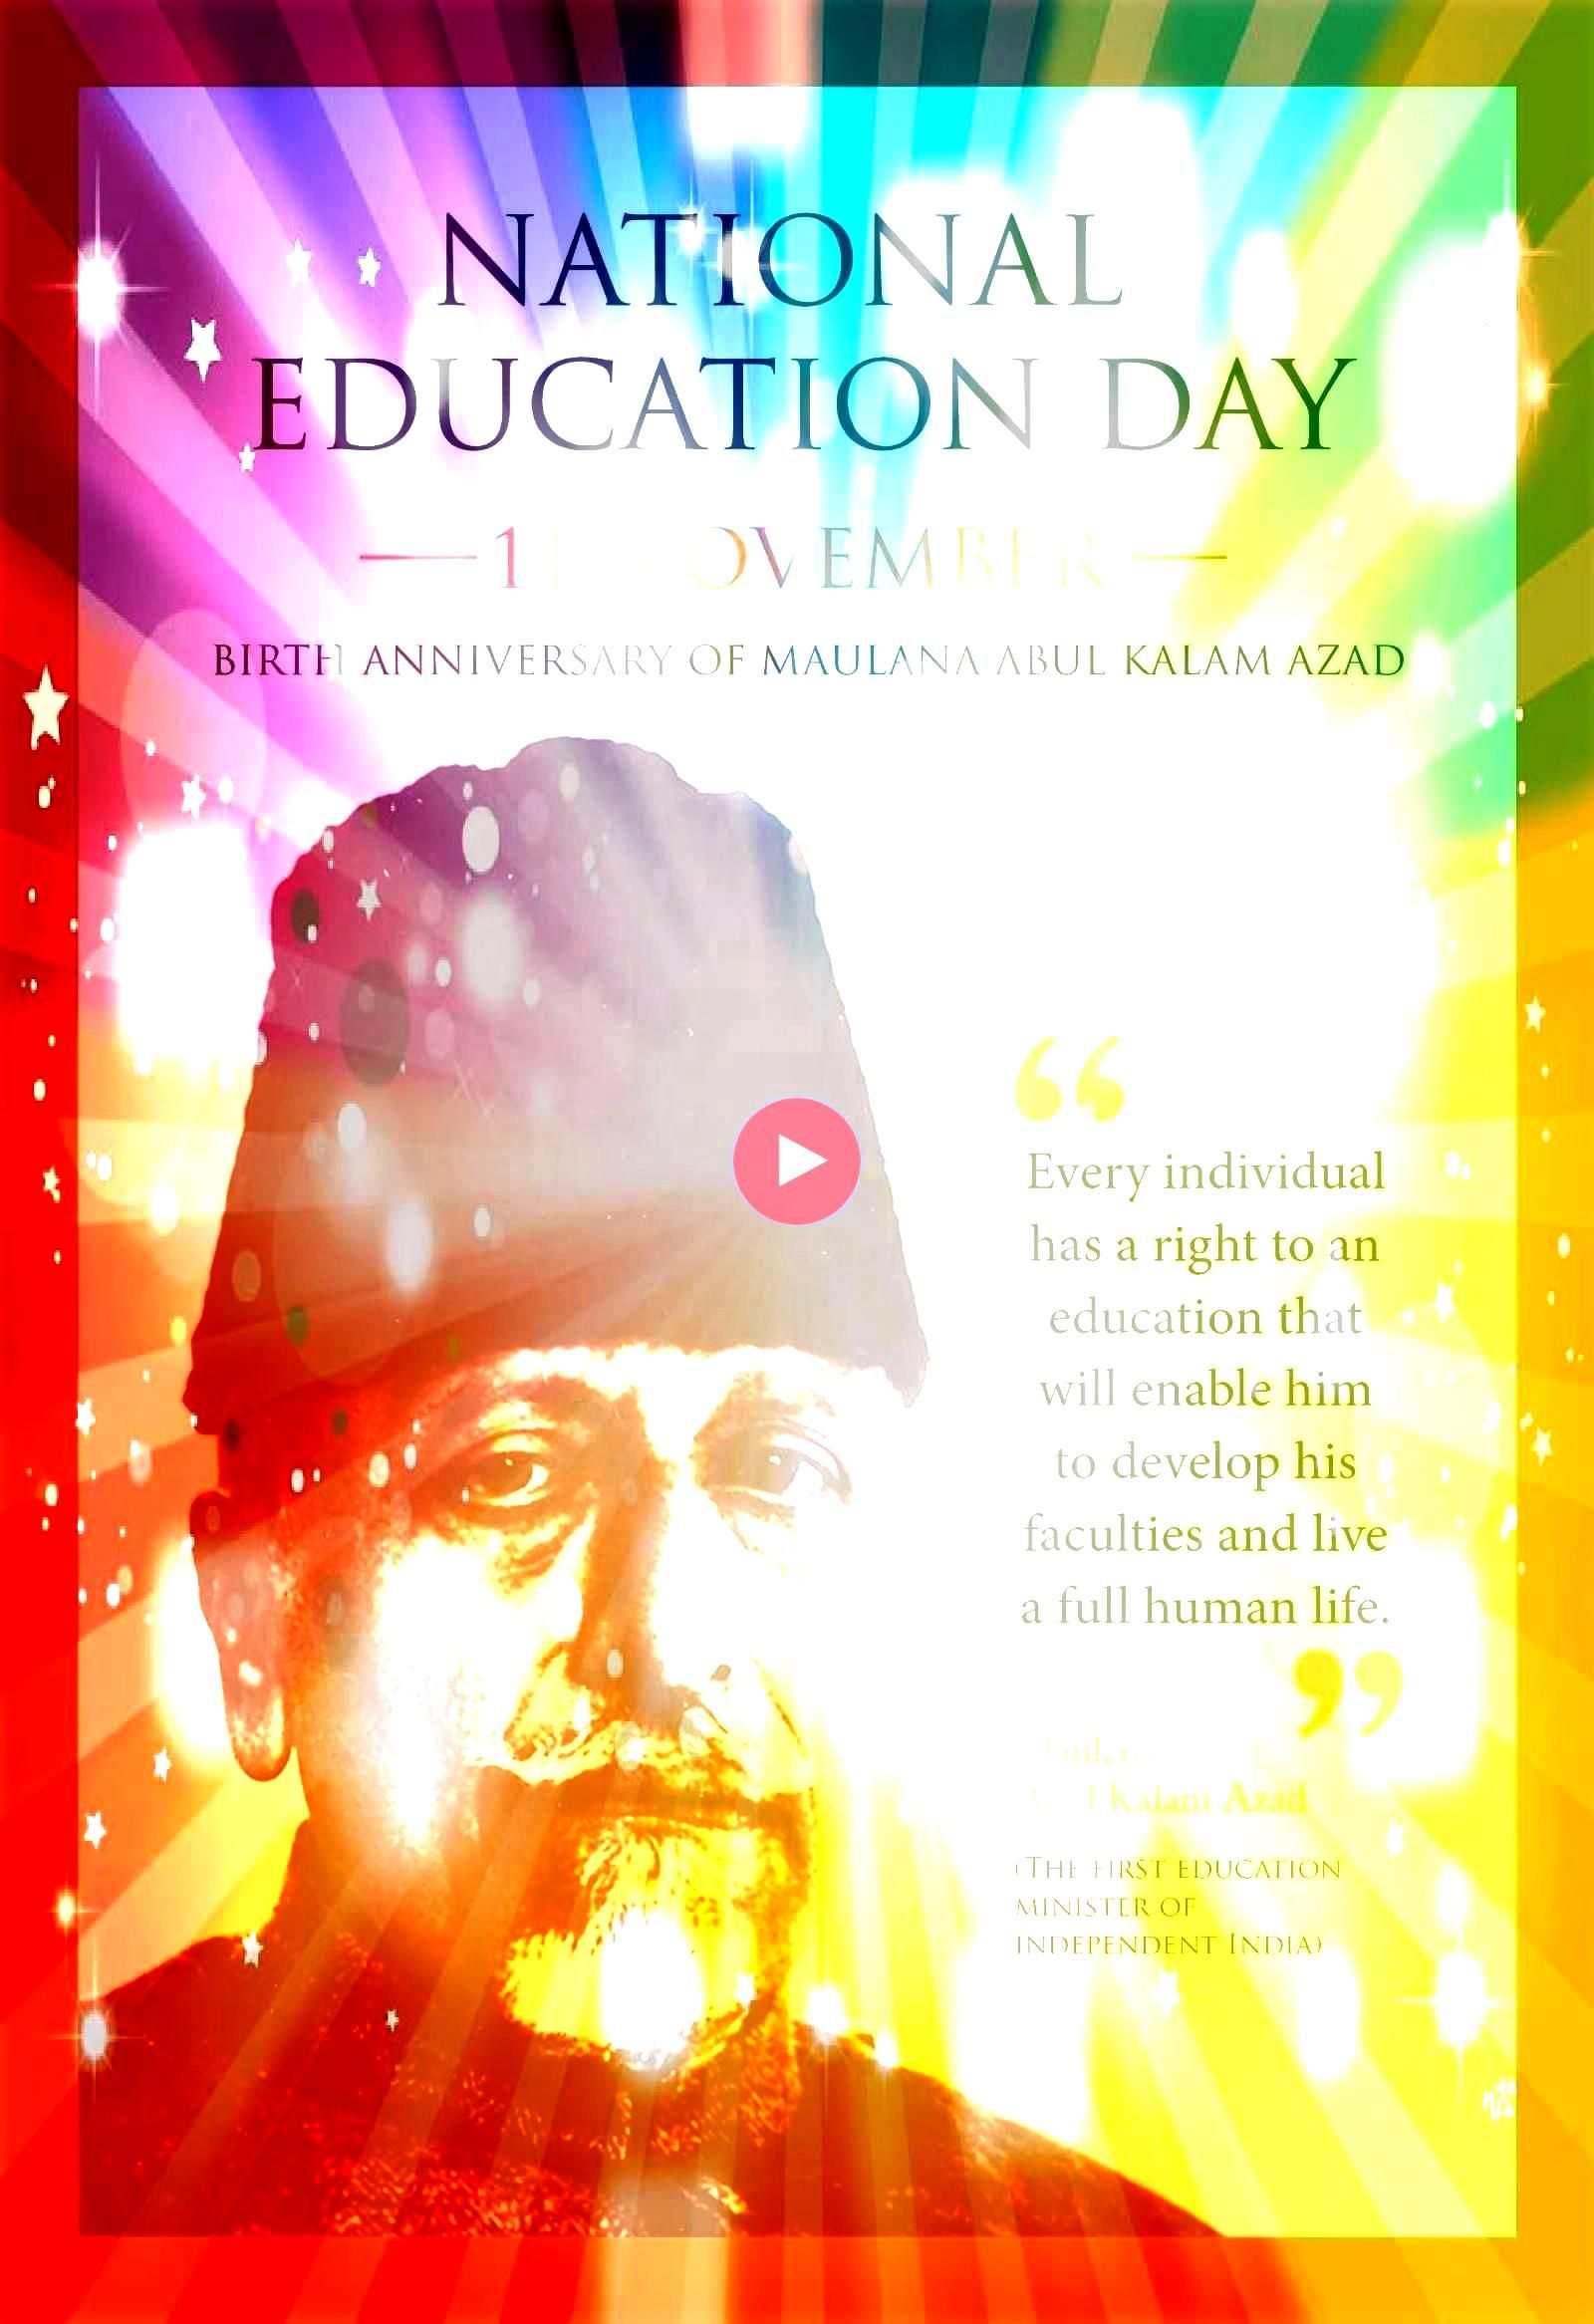 2019 is an annual observance in India to commemorate the birth anniversary of the first education minister of independent India who served from 15 August 1947 until 2 Feb...